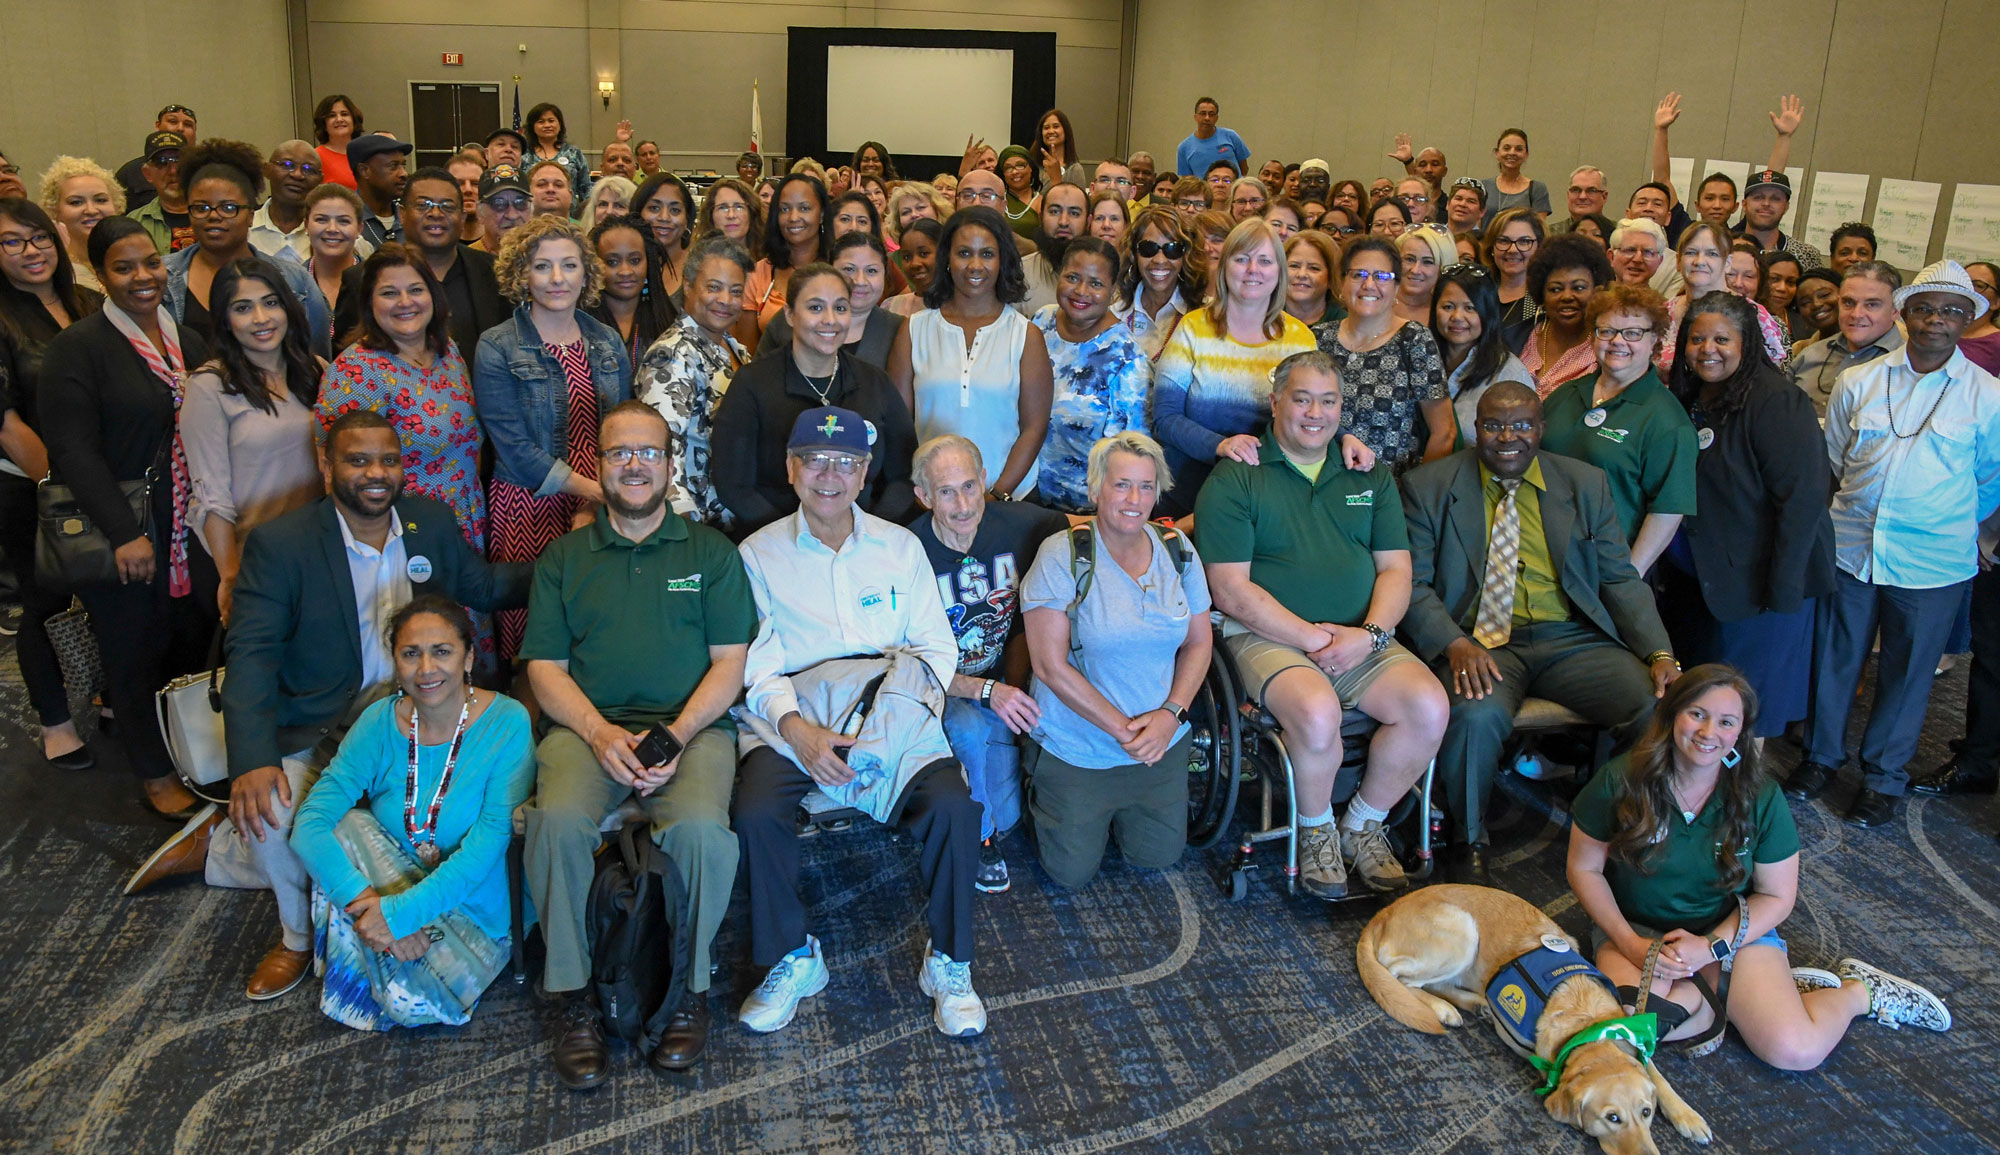 AFSCME Local 2620 members at a large occupational meeting